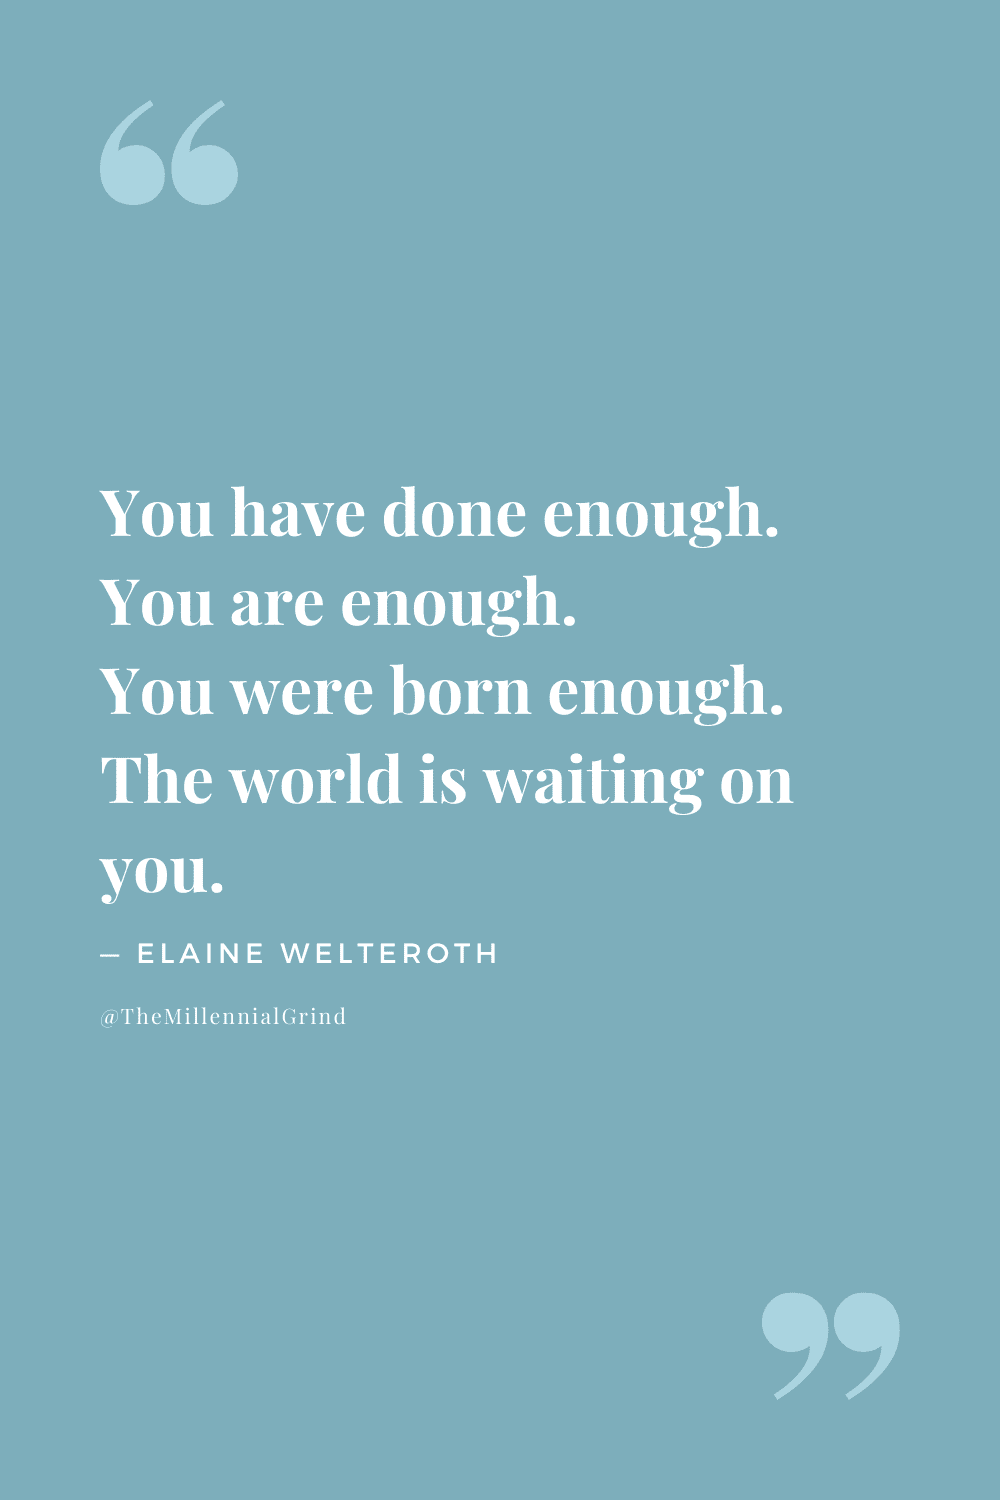 Quotes From More Than Enough By Elaine Welteroth